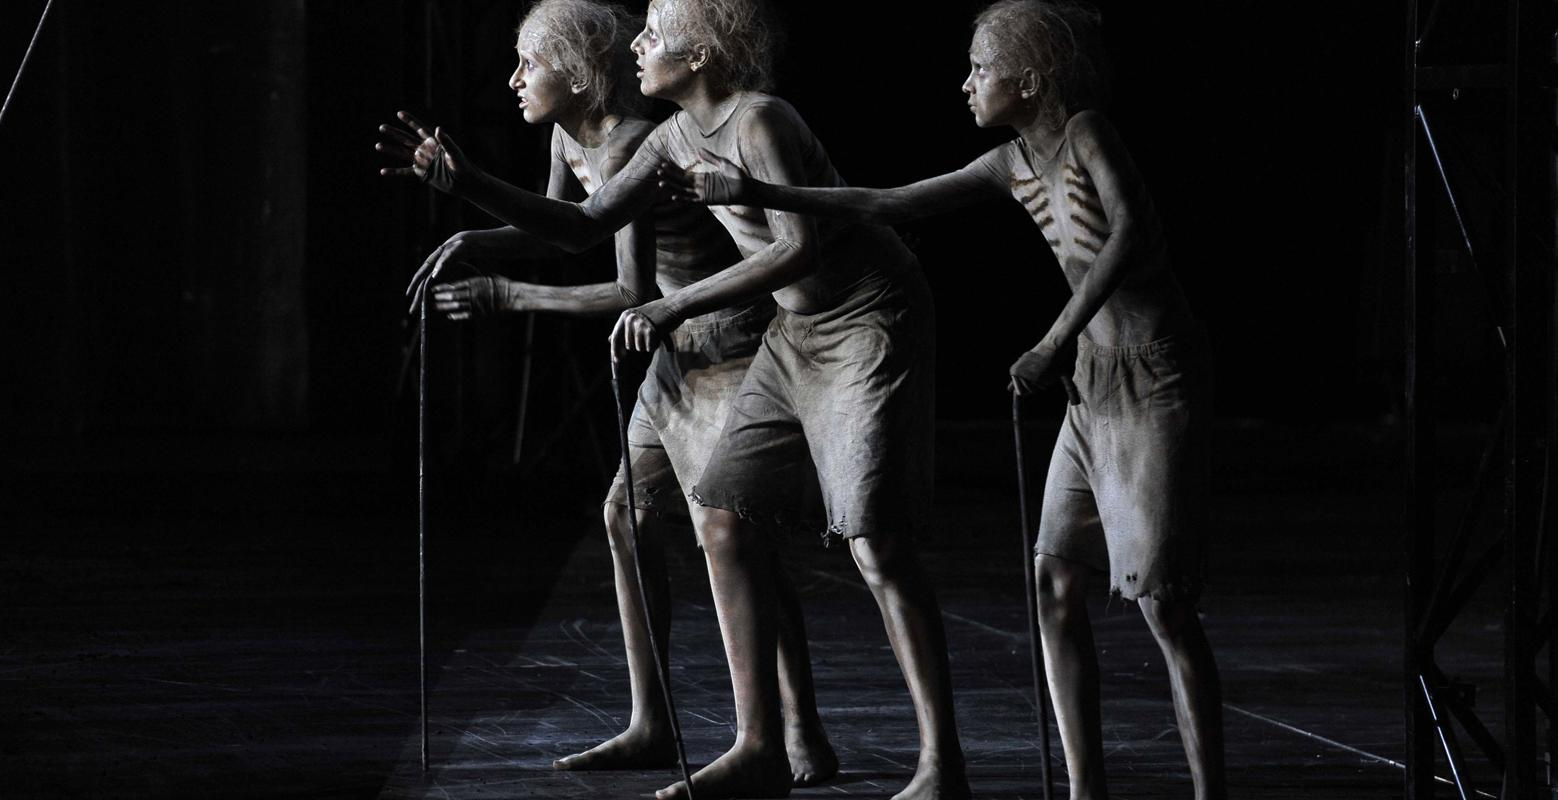 Three skeletons with walking sticks holding out their hands in ENO's The Magic Flute